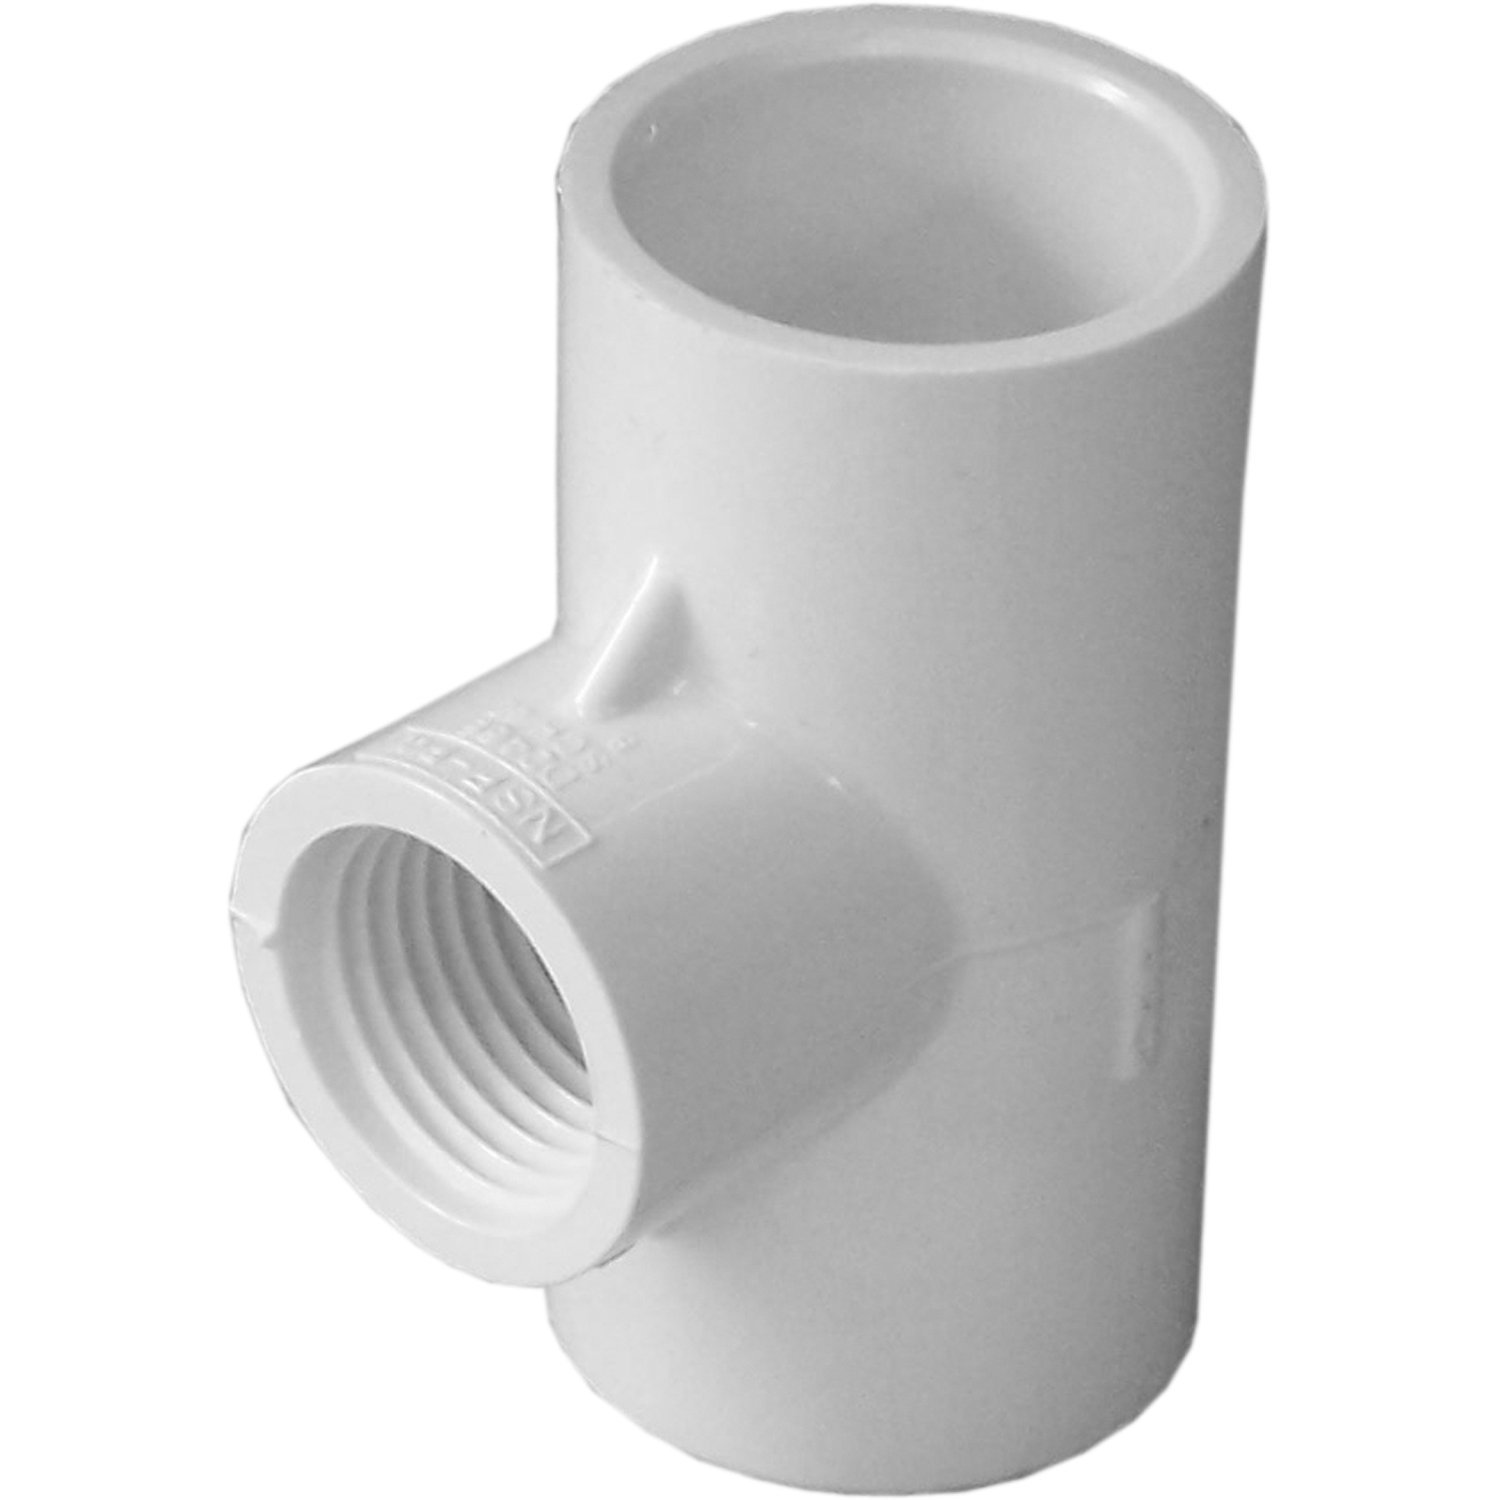 Genova Products 31481CP 3/4-Inch by 1/2-Inch Female Iron Pipe Thread Reducing PVC Pipe Tee - 10 Pack